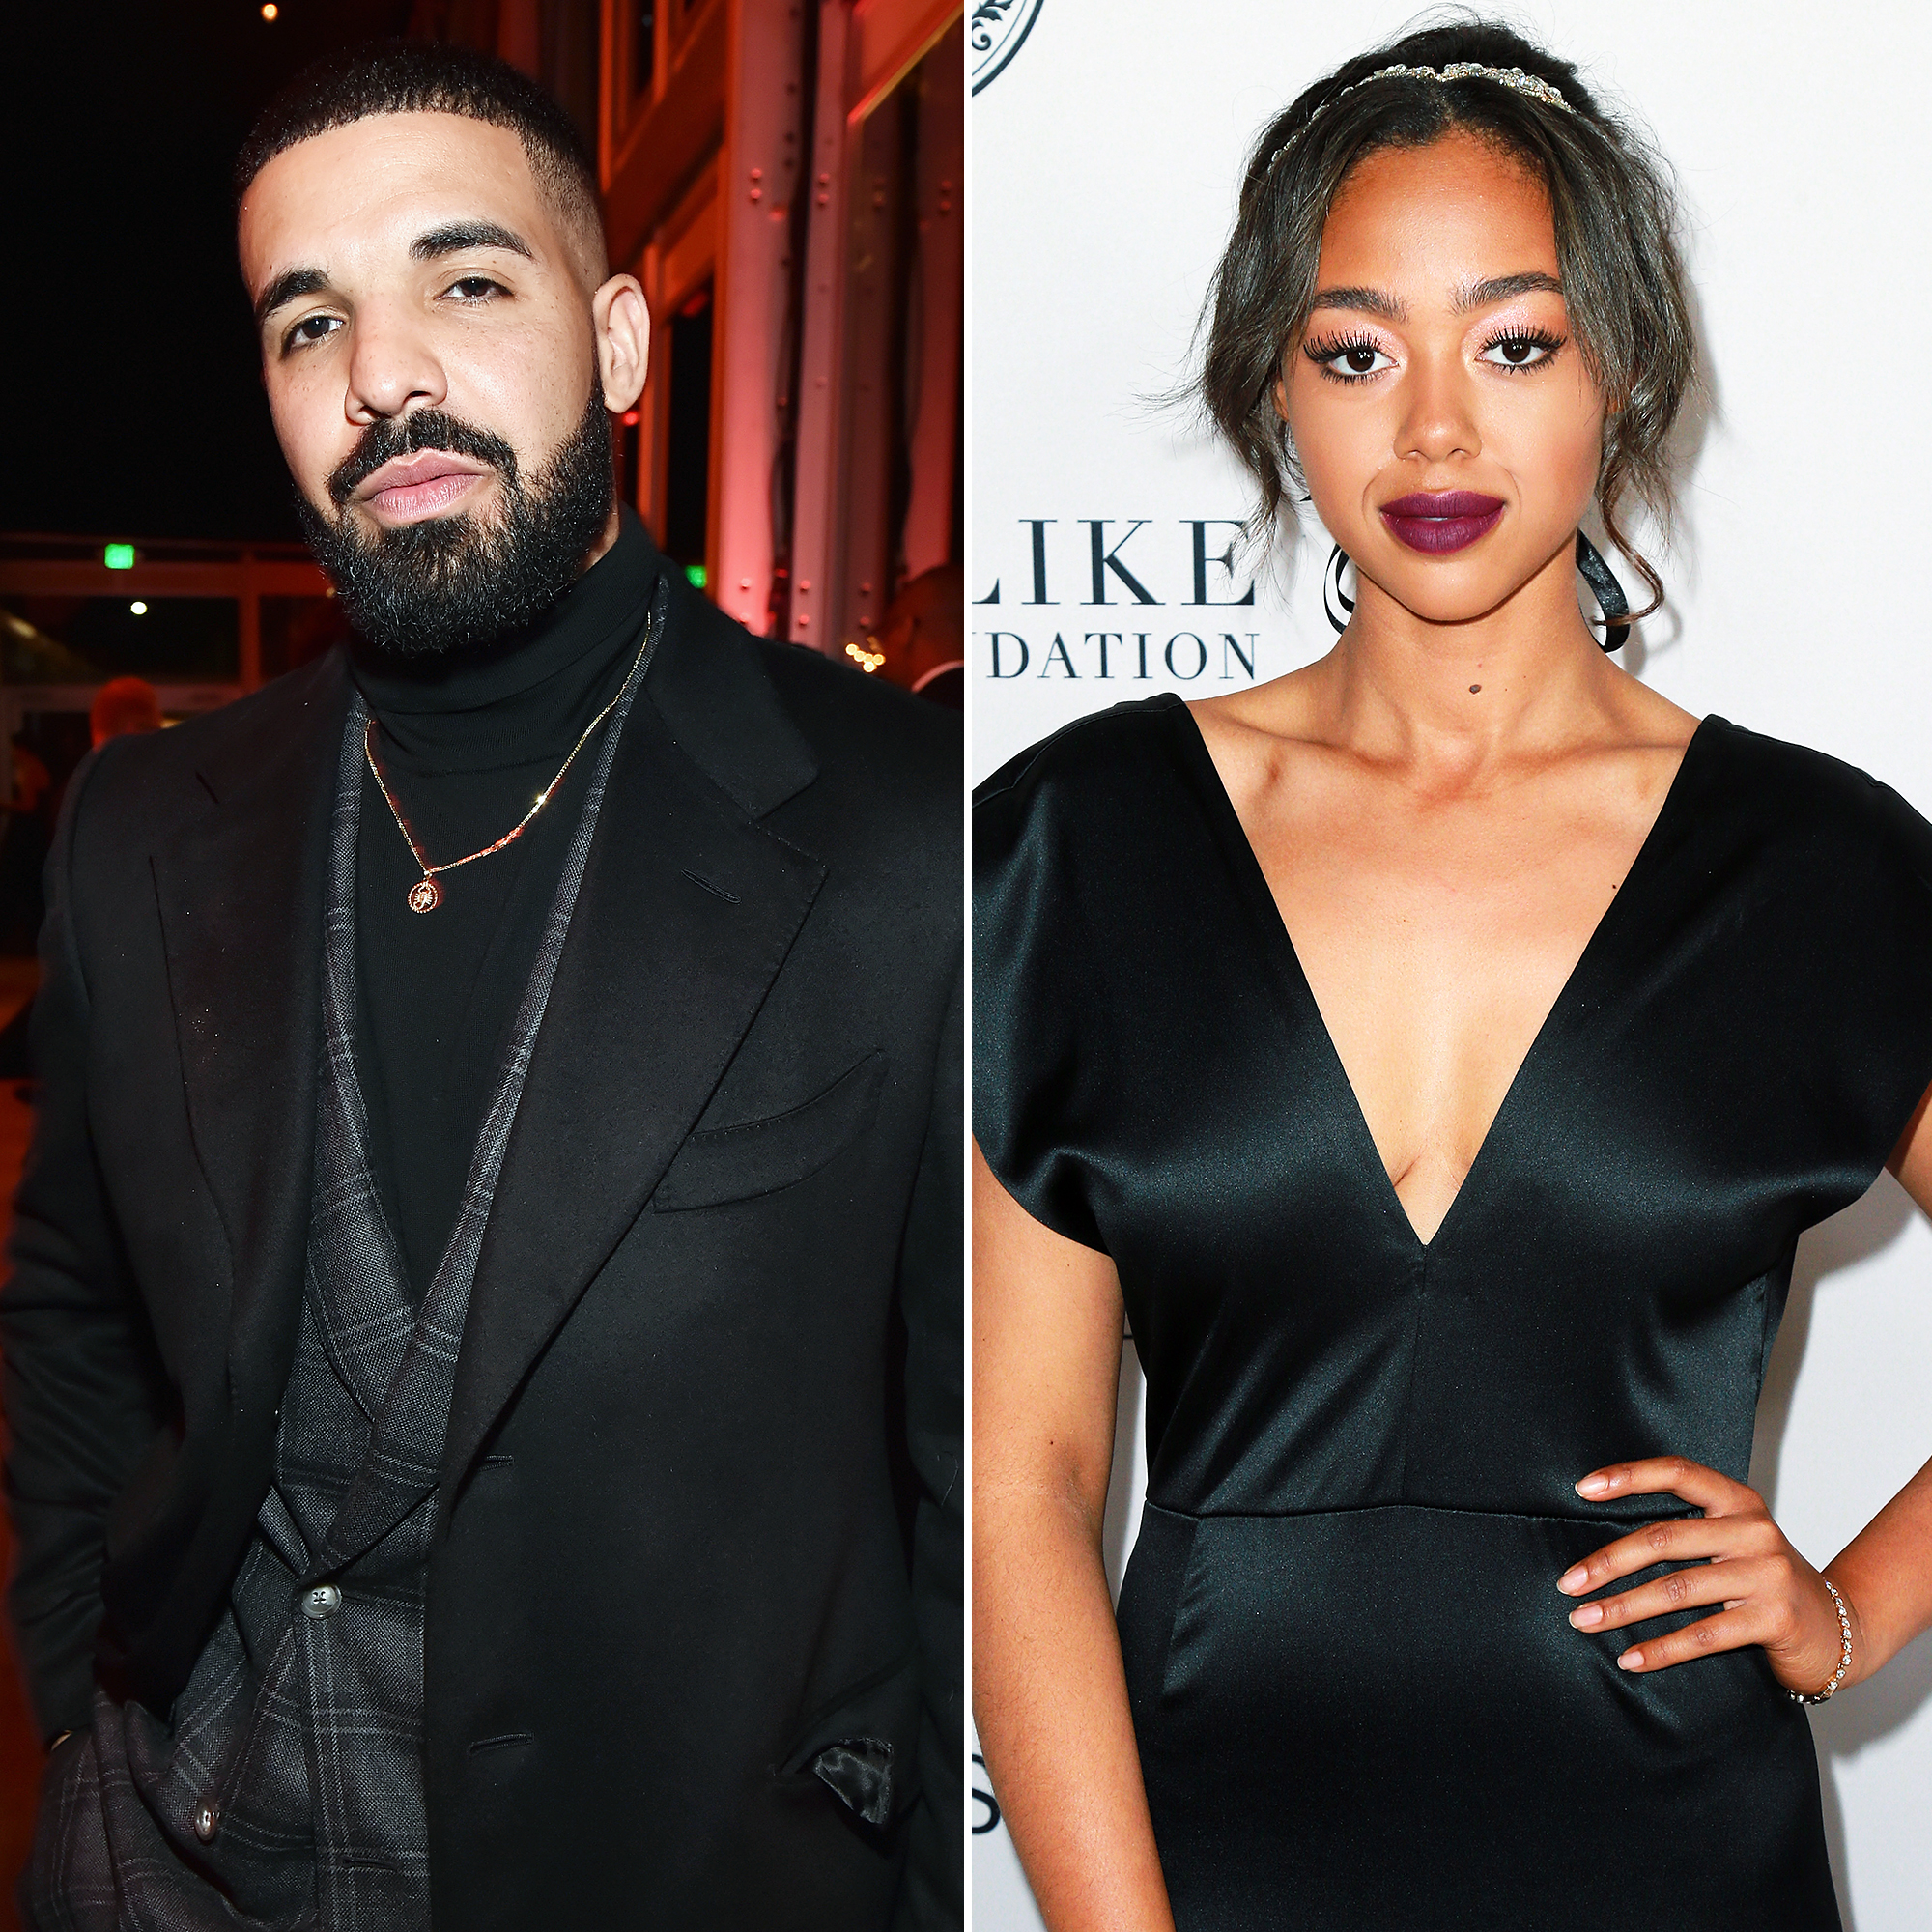 who is dating drake 2018